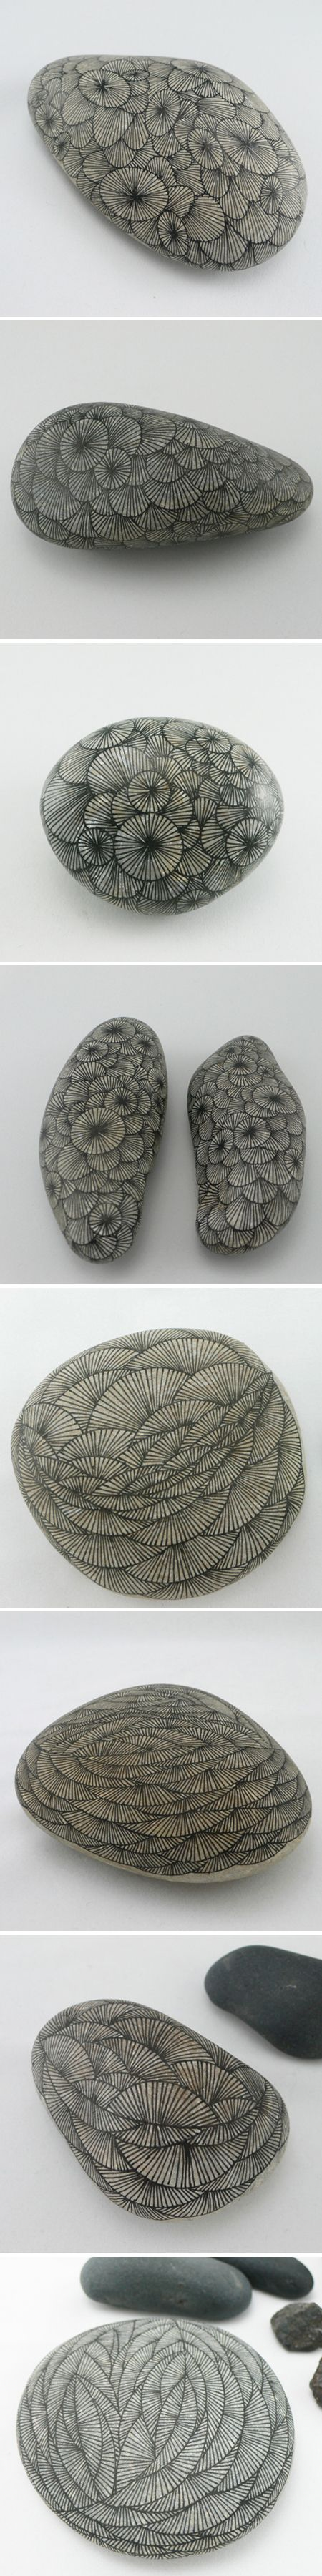 Drawing on Stones